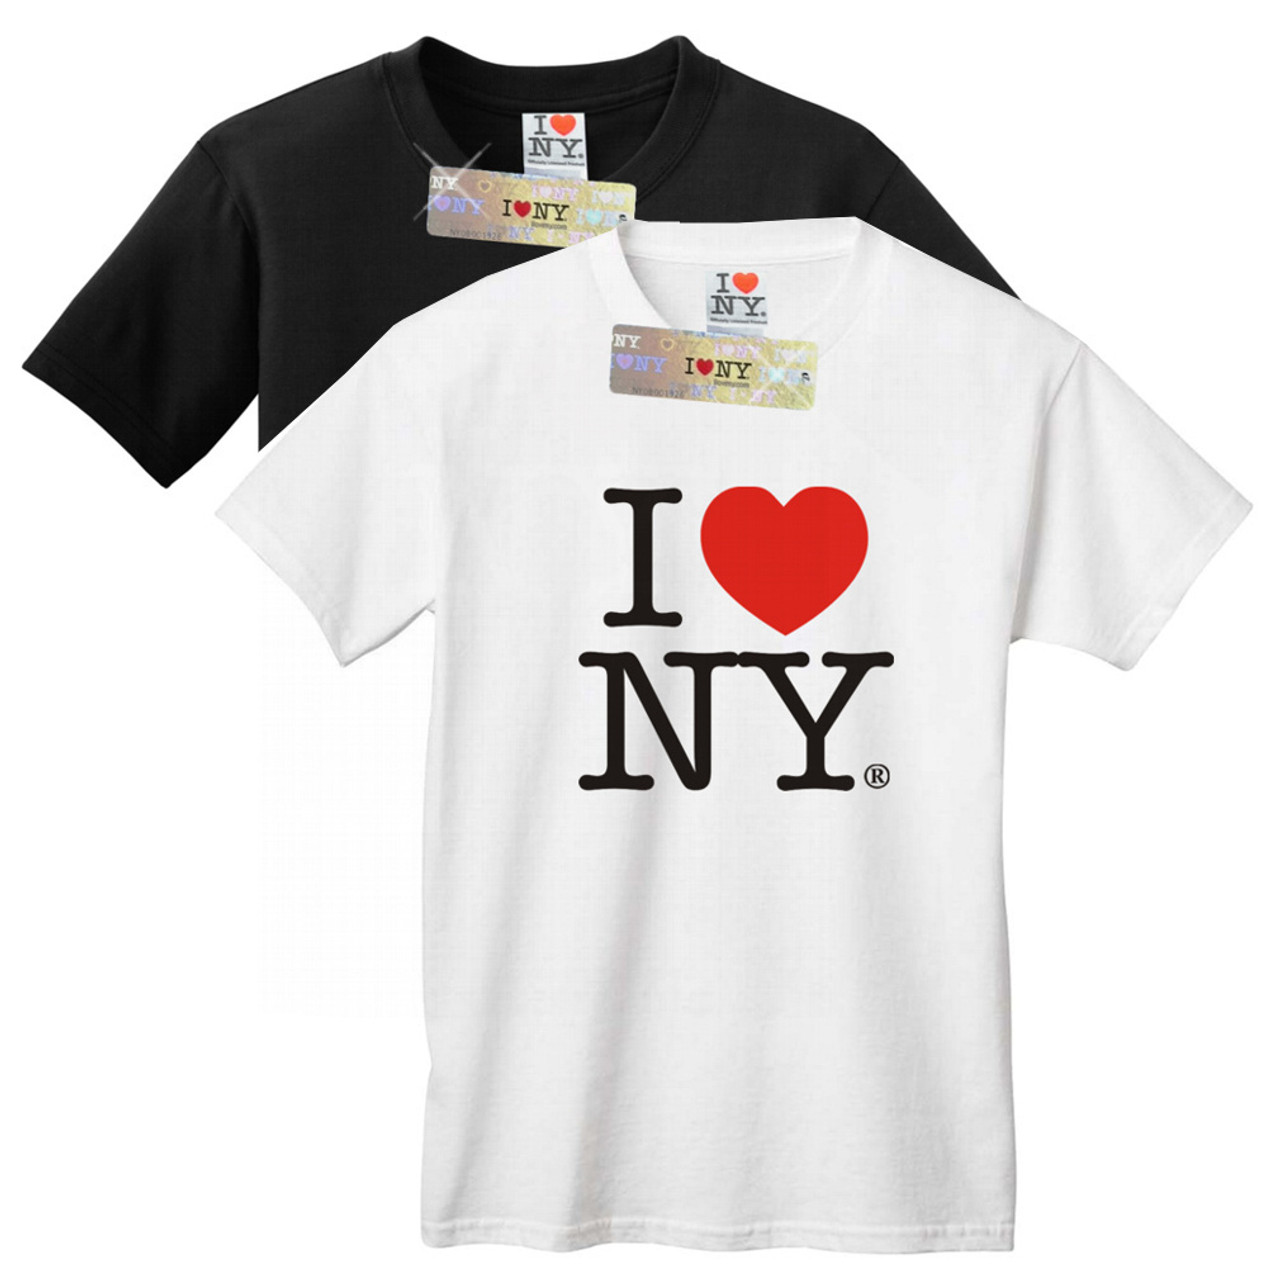 420f3d3a I Love NY Shirts, adult sizes in white and black. I Love NY Souvenir